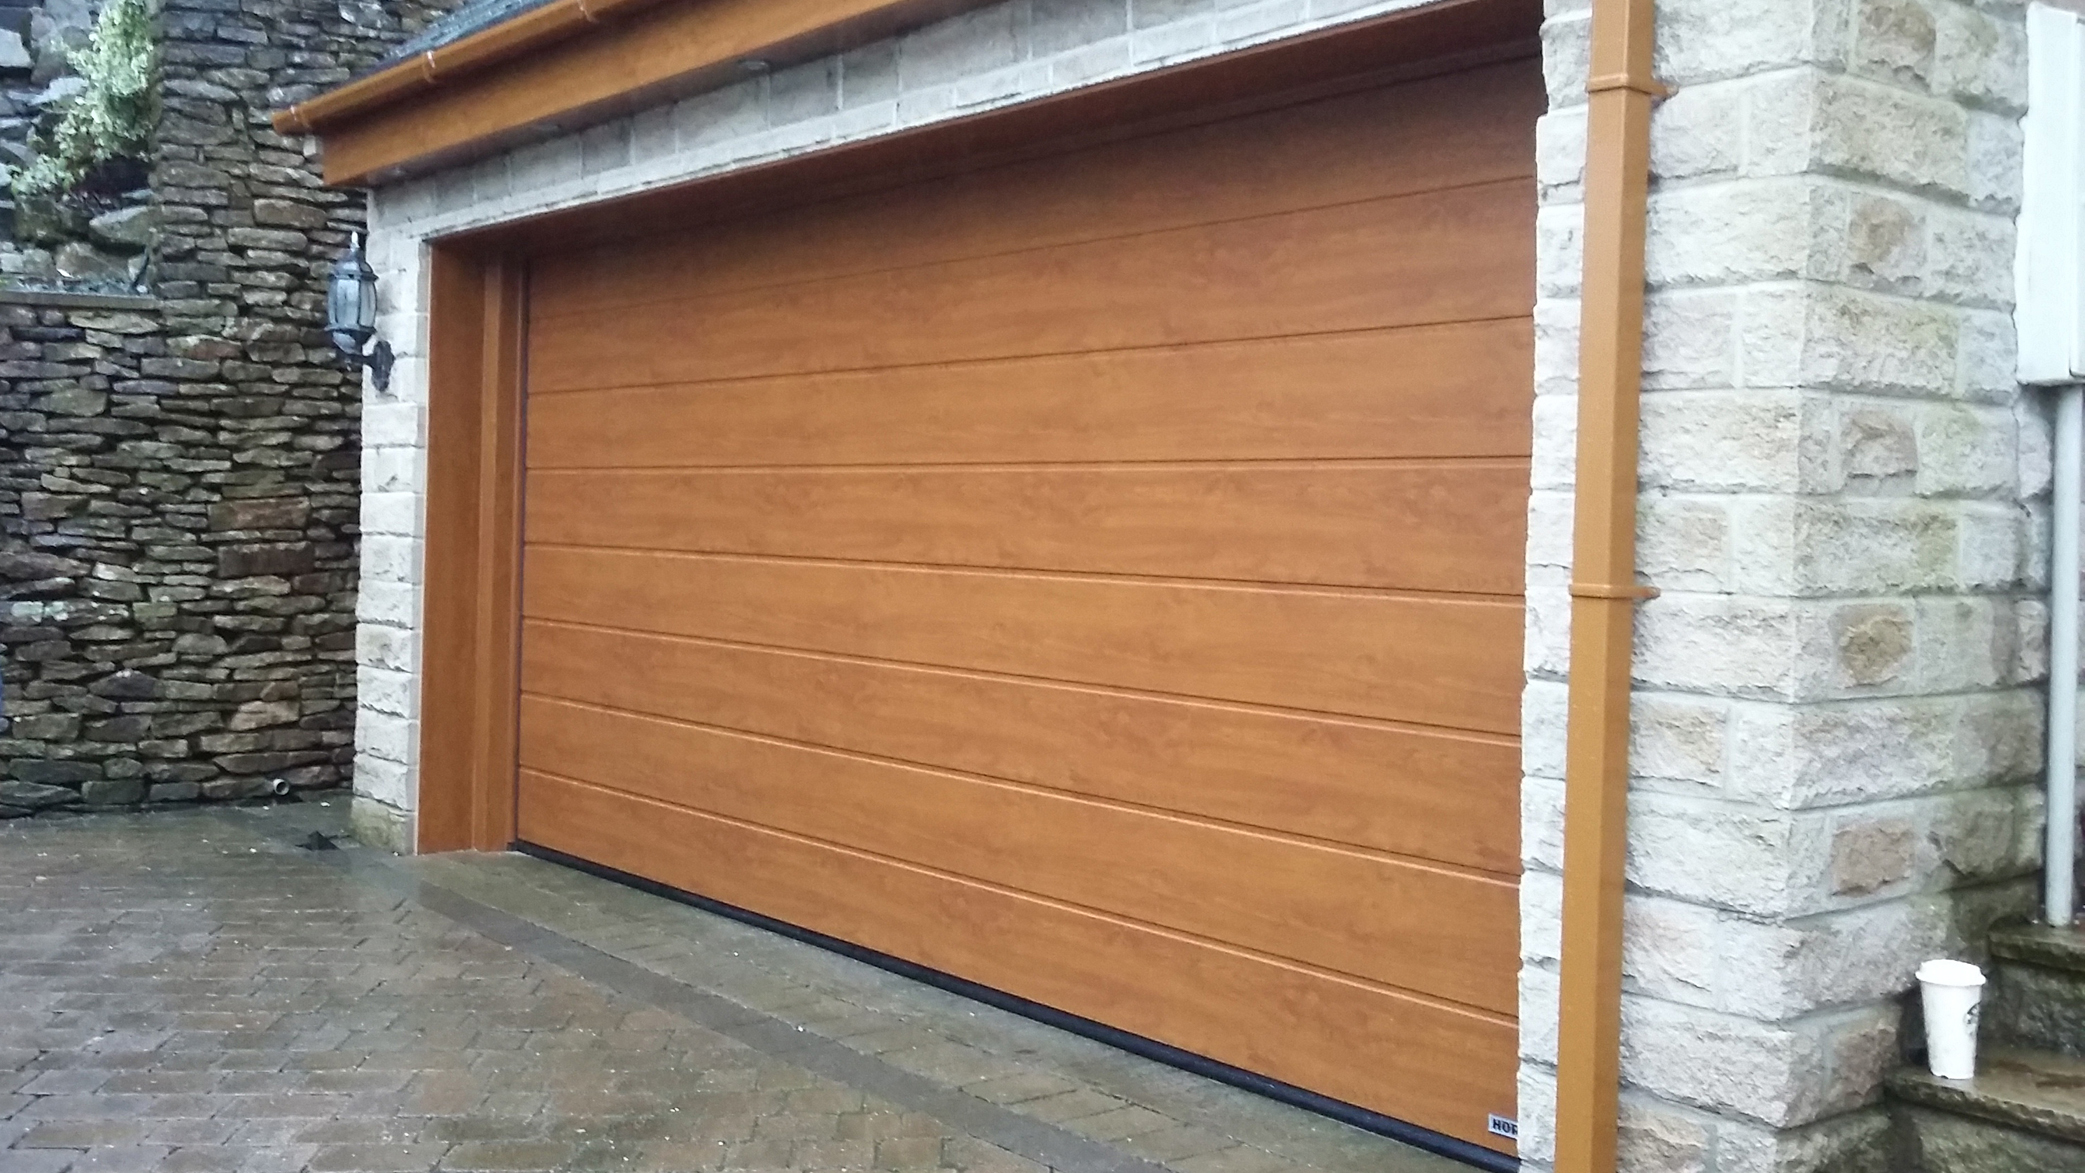 Hormann Sectional Door Mossley Pennine Garage Doors